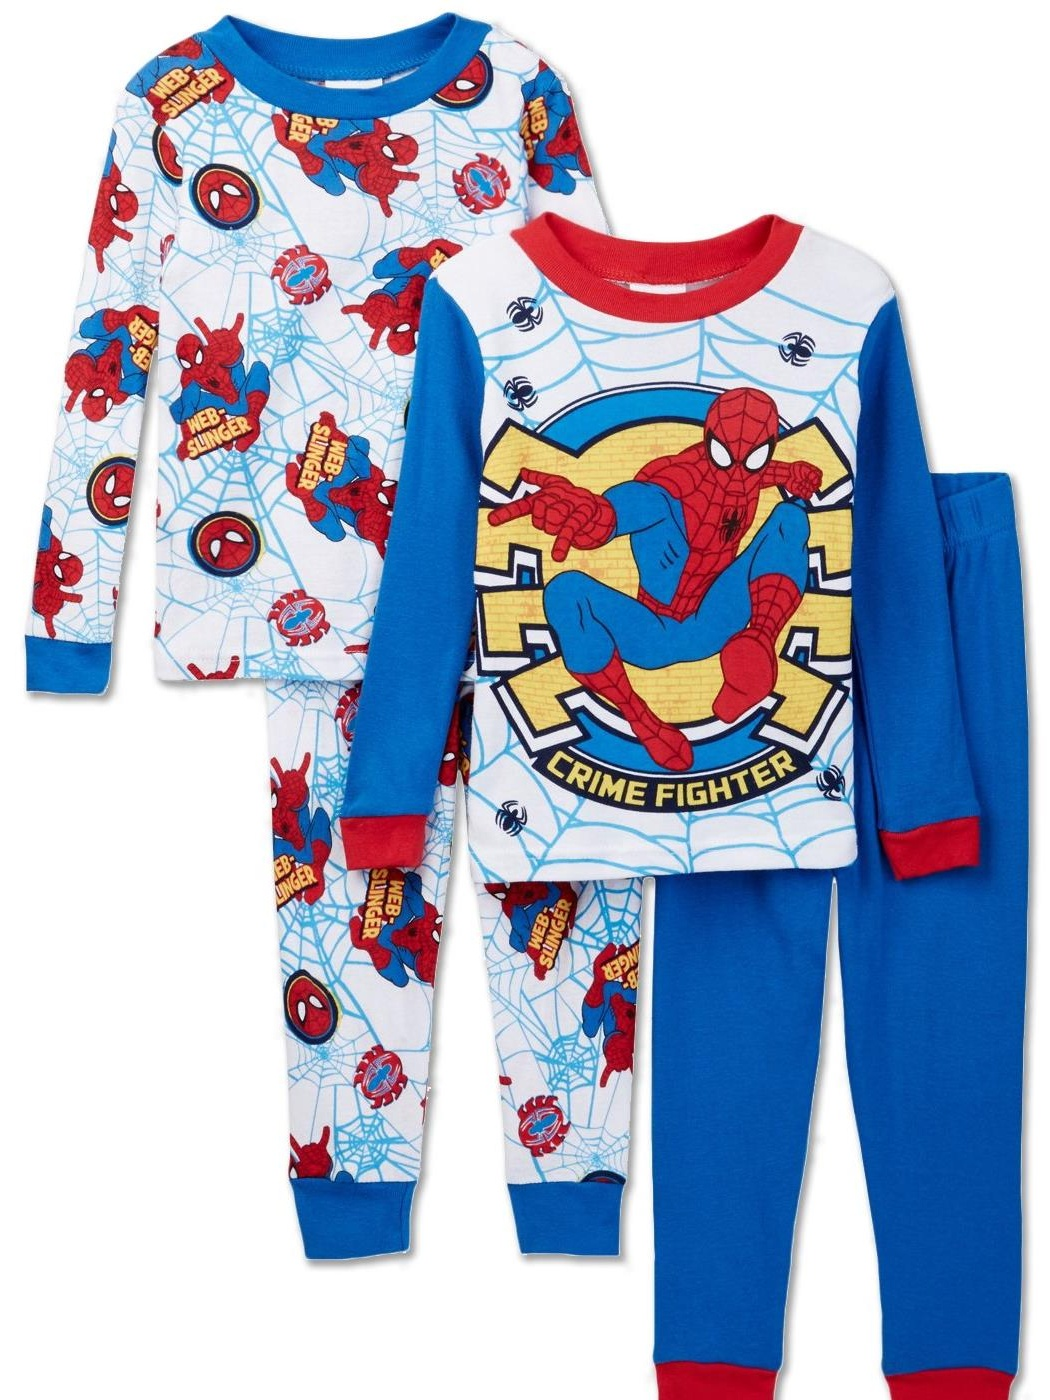 Marvel Spiderman 4 Piece Cotton Pajama Set, Toddler Sizes 2T-4T, Multicolor, Size: 3T Toddler